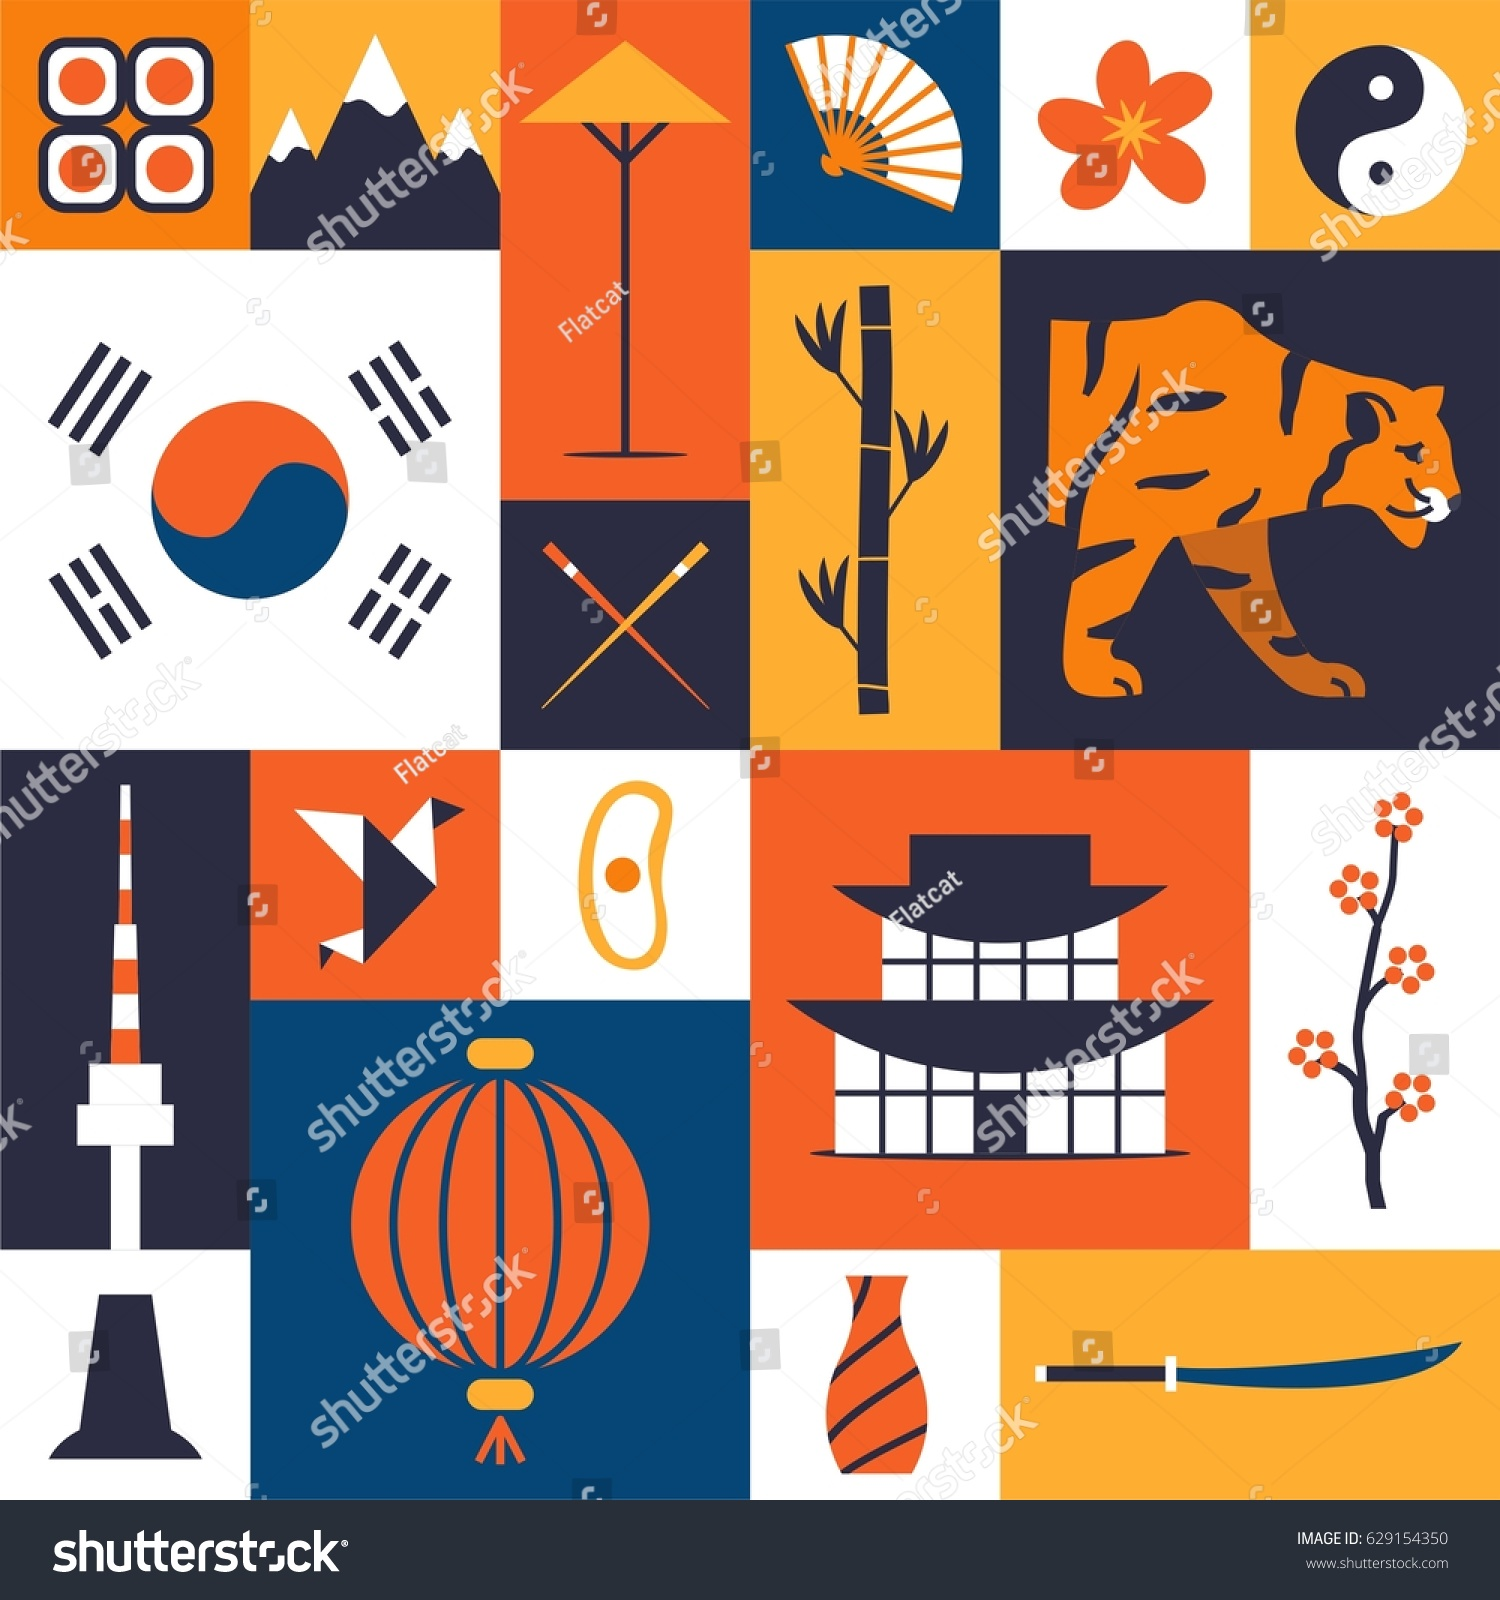 Korean Culture Symbols Image Collections Meaning Of This Symbol